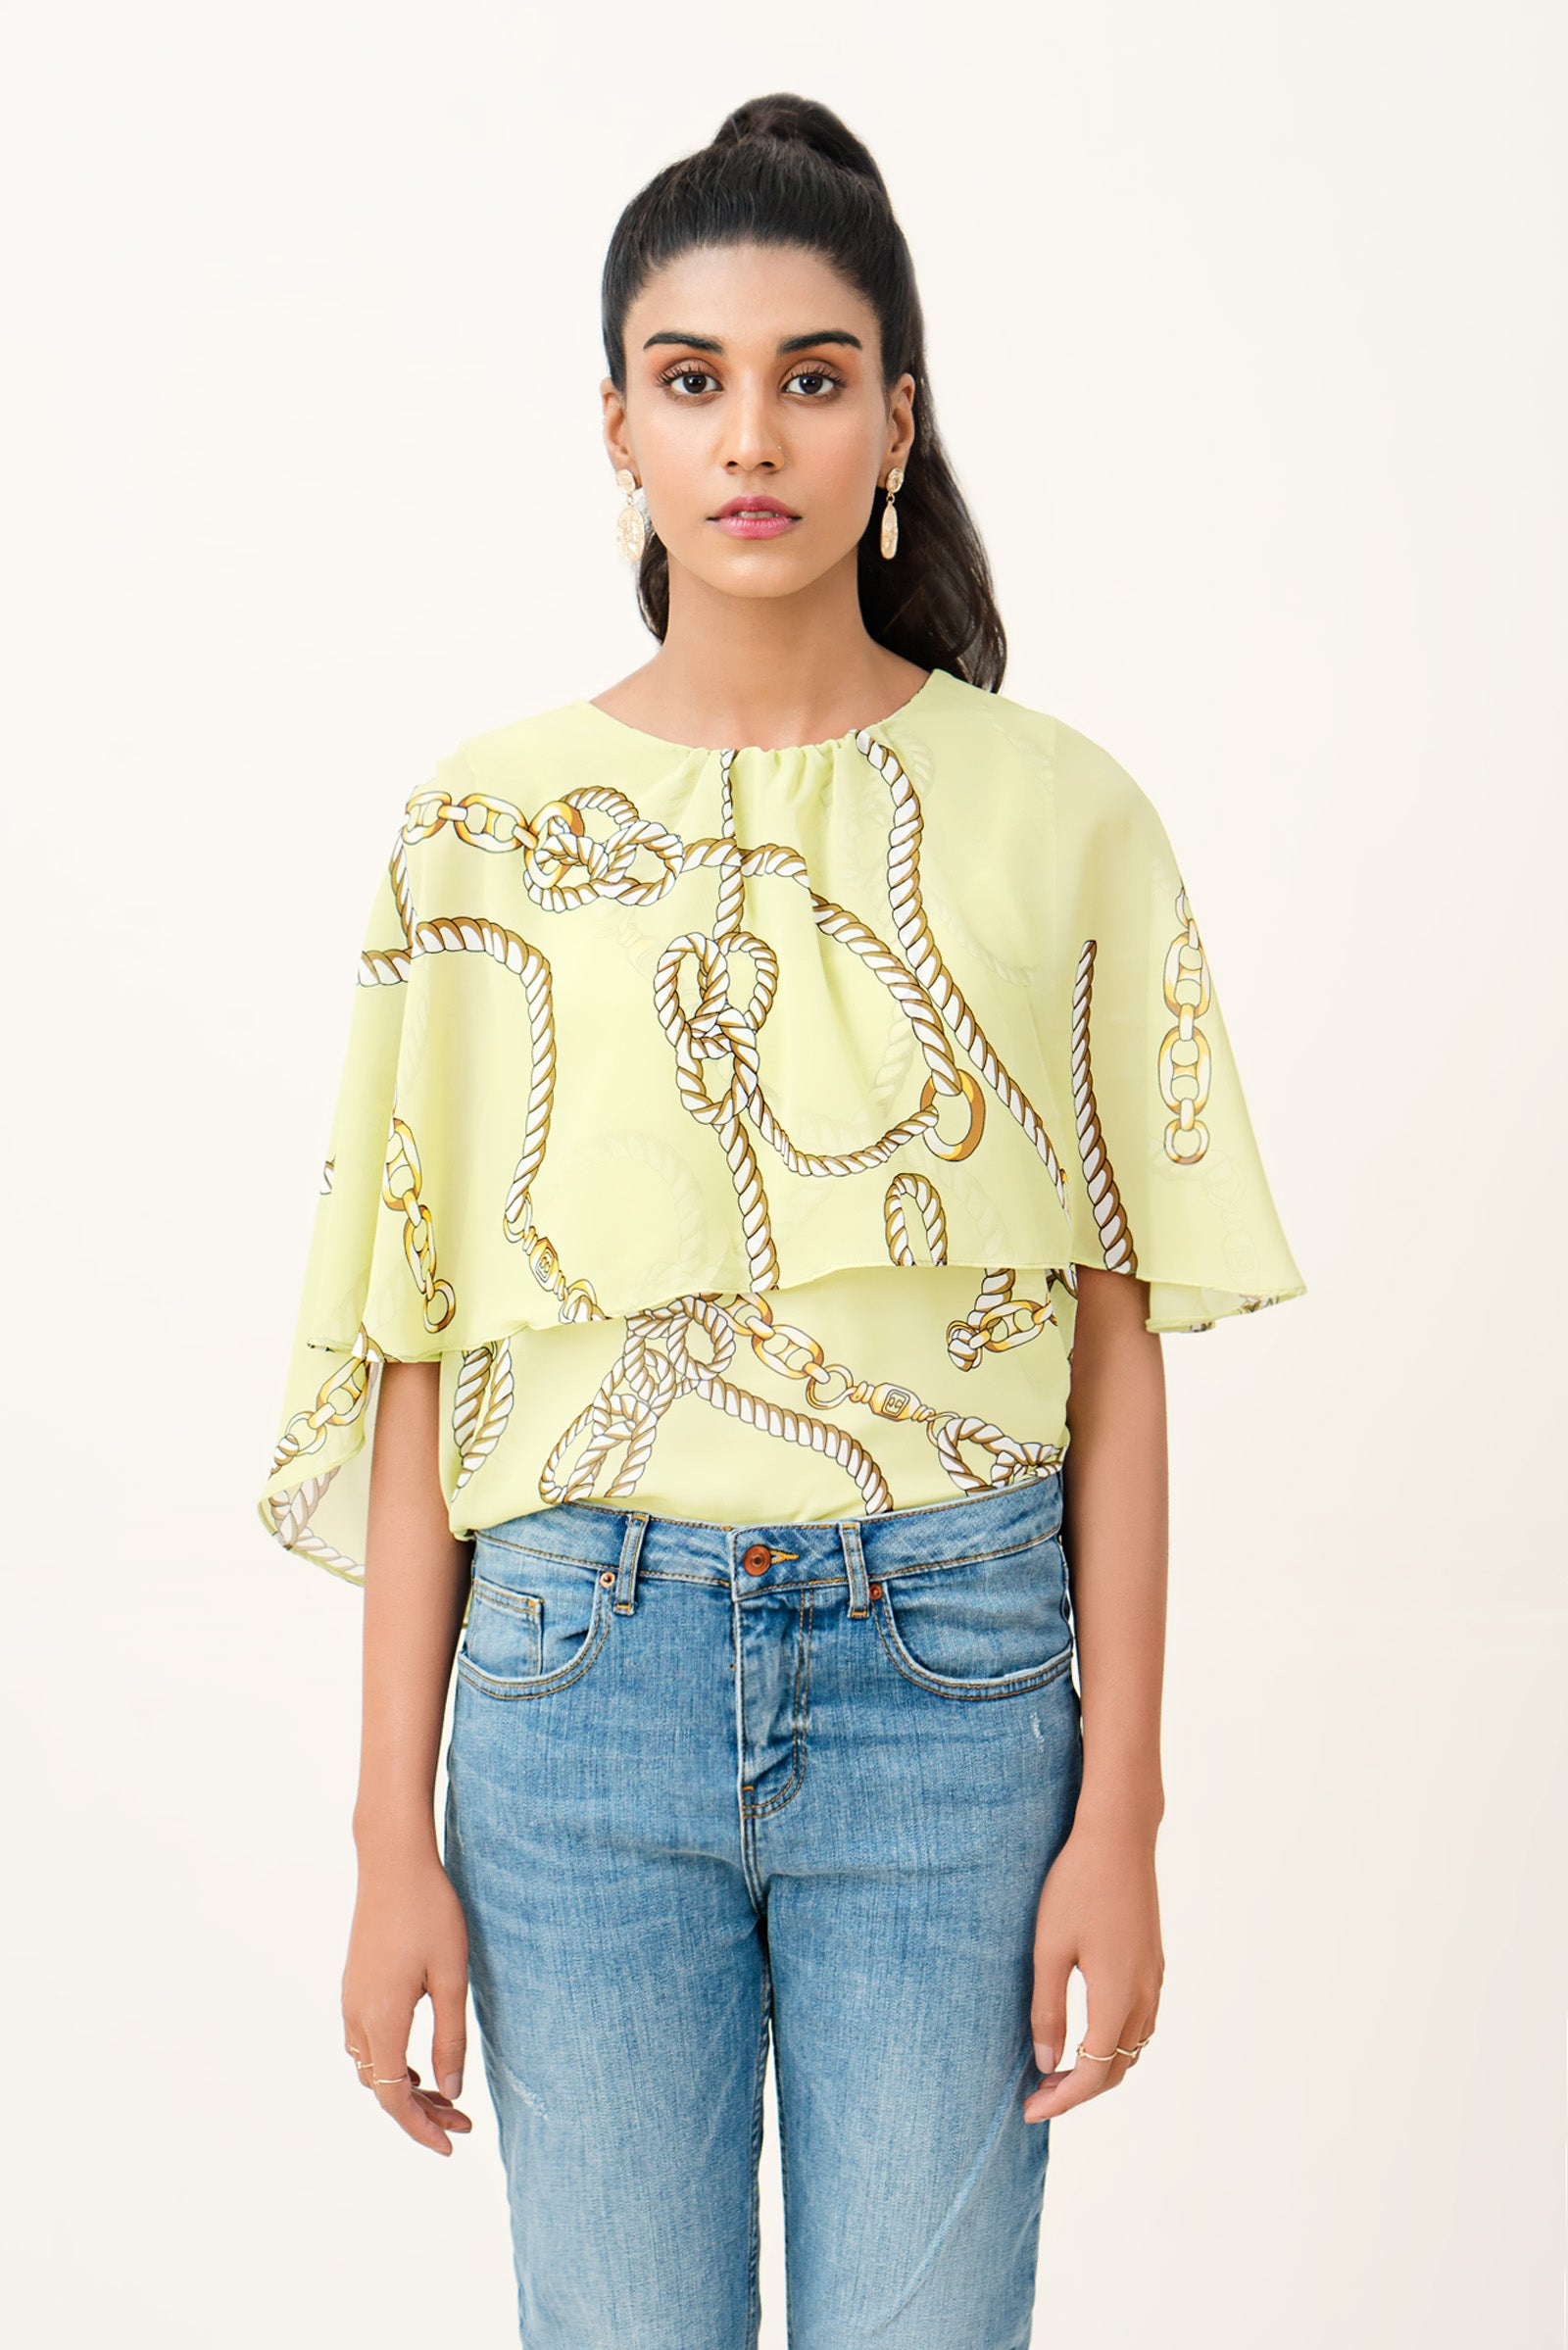 Chain Printed Top